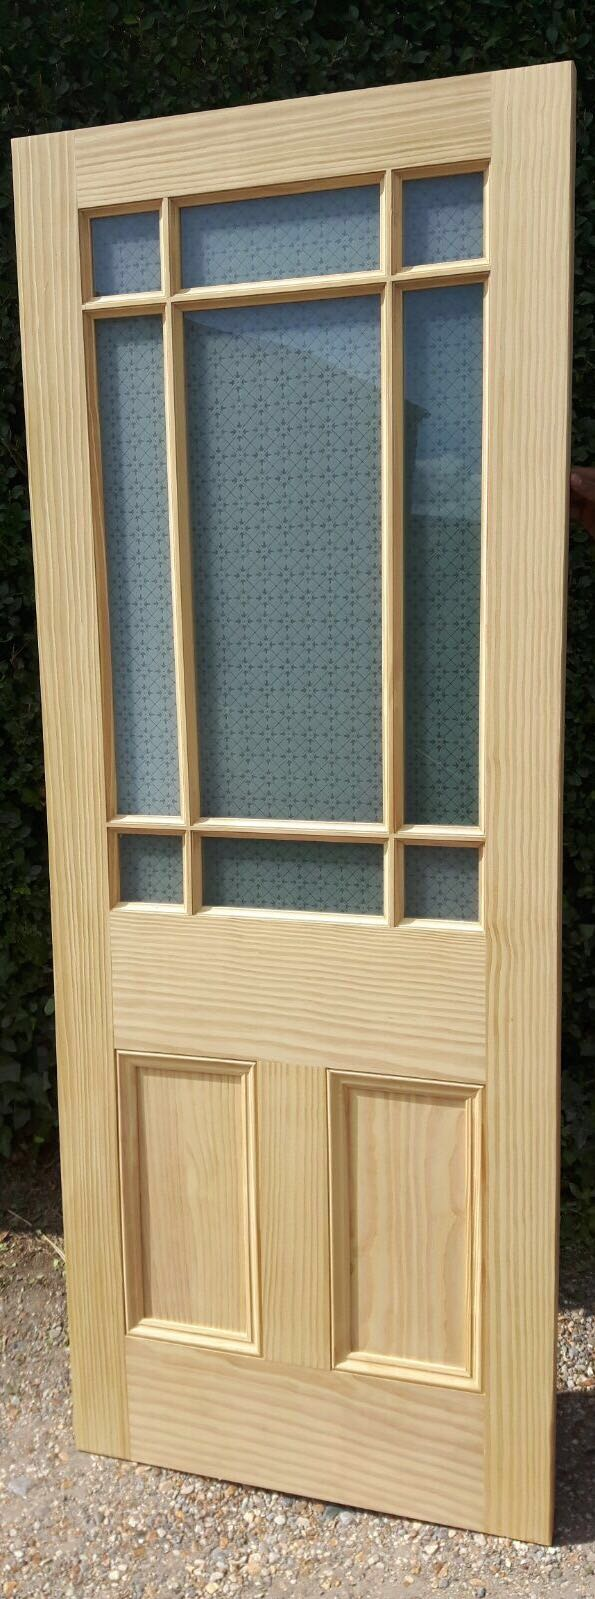 lightbox & NEW SOLID 9 Panel Glazed Glass Pine INTERIOR Door Solid Wood Clear ...